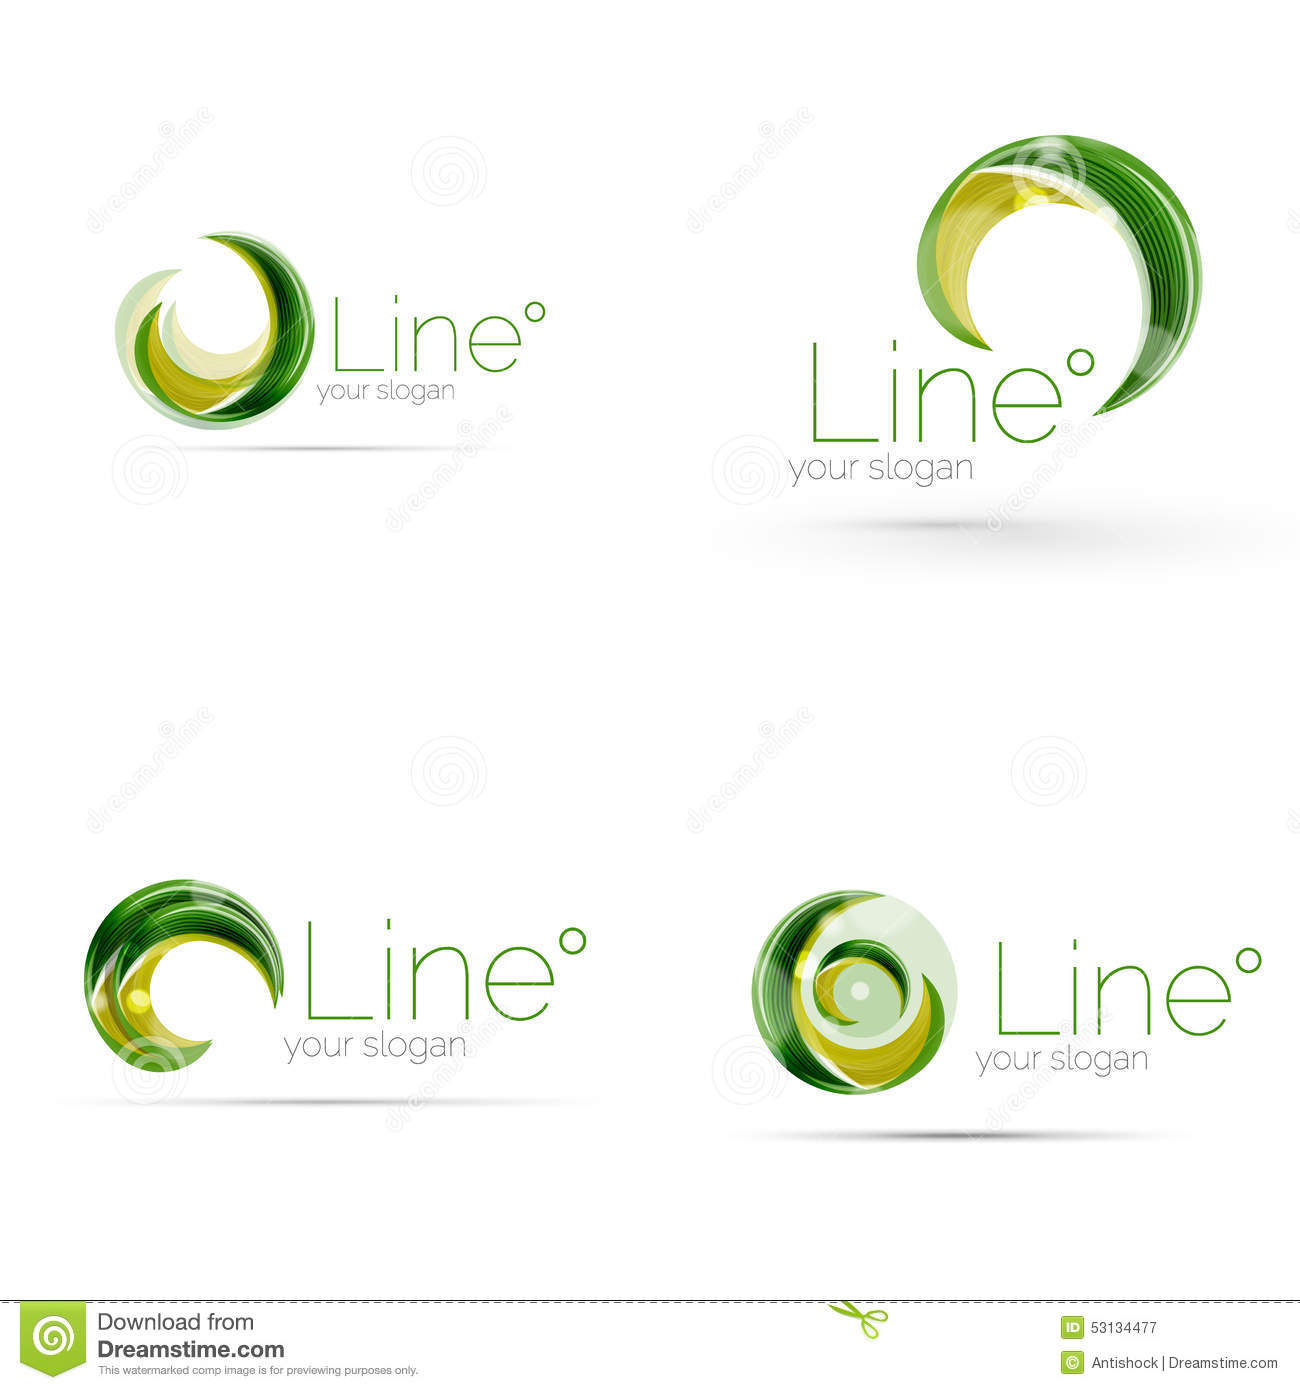 company logo design universal for all ideas and concepts business - Company Logo Design Ideas